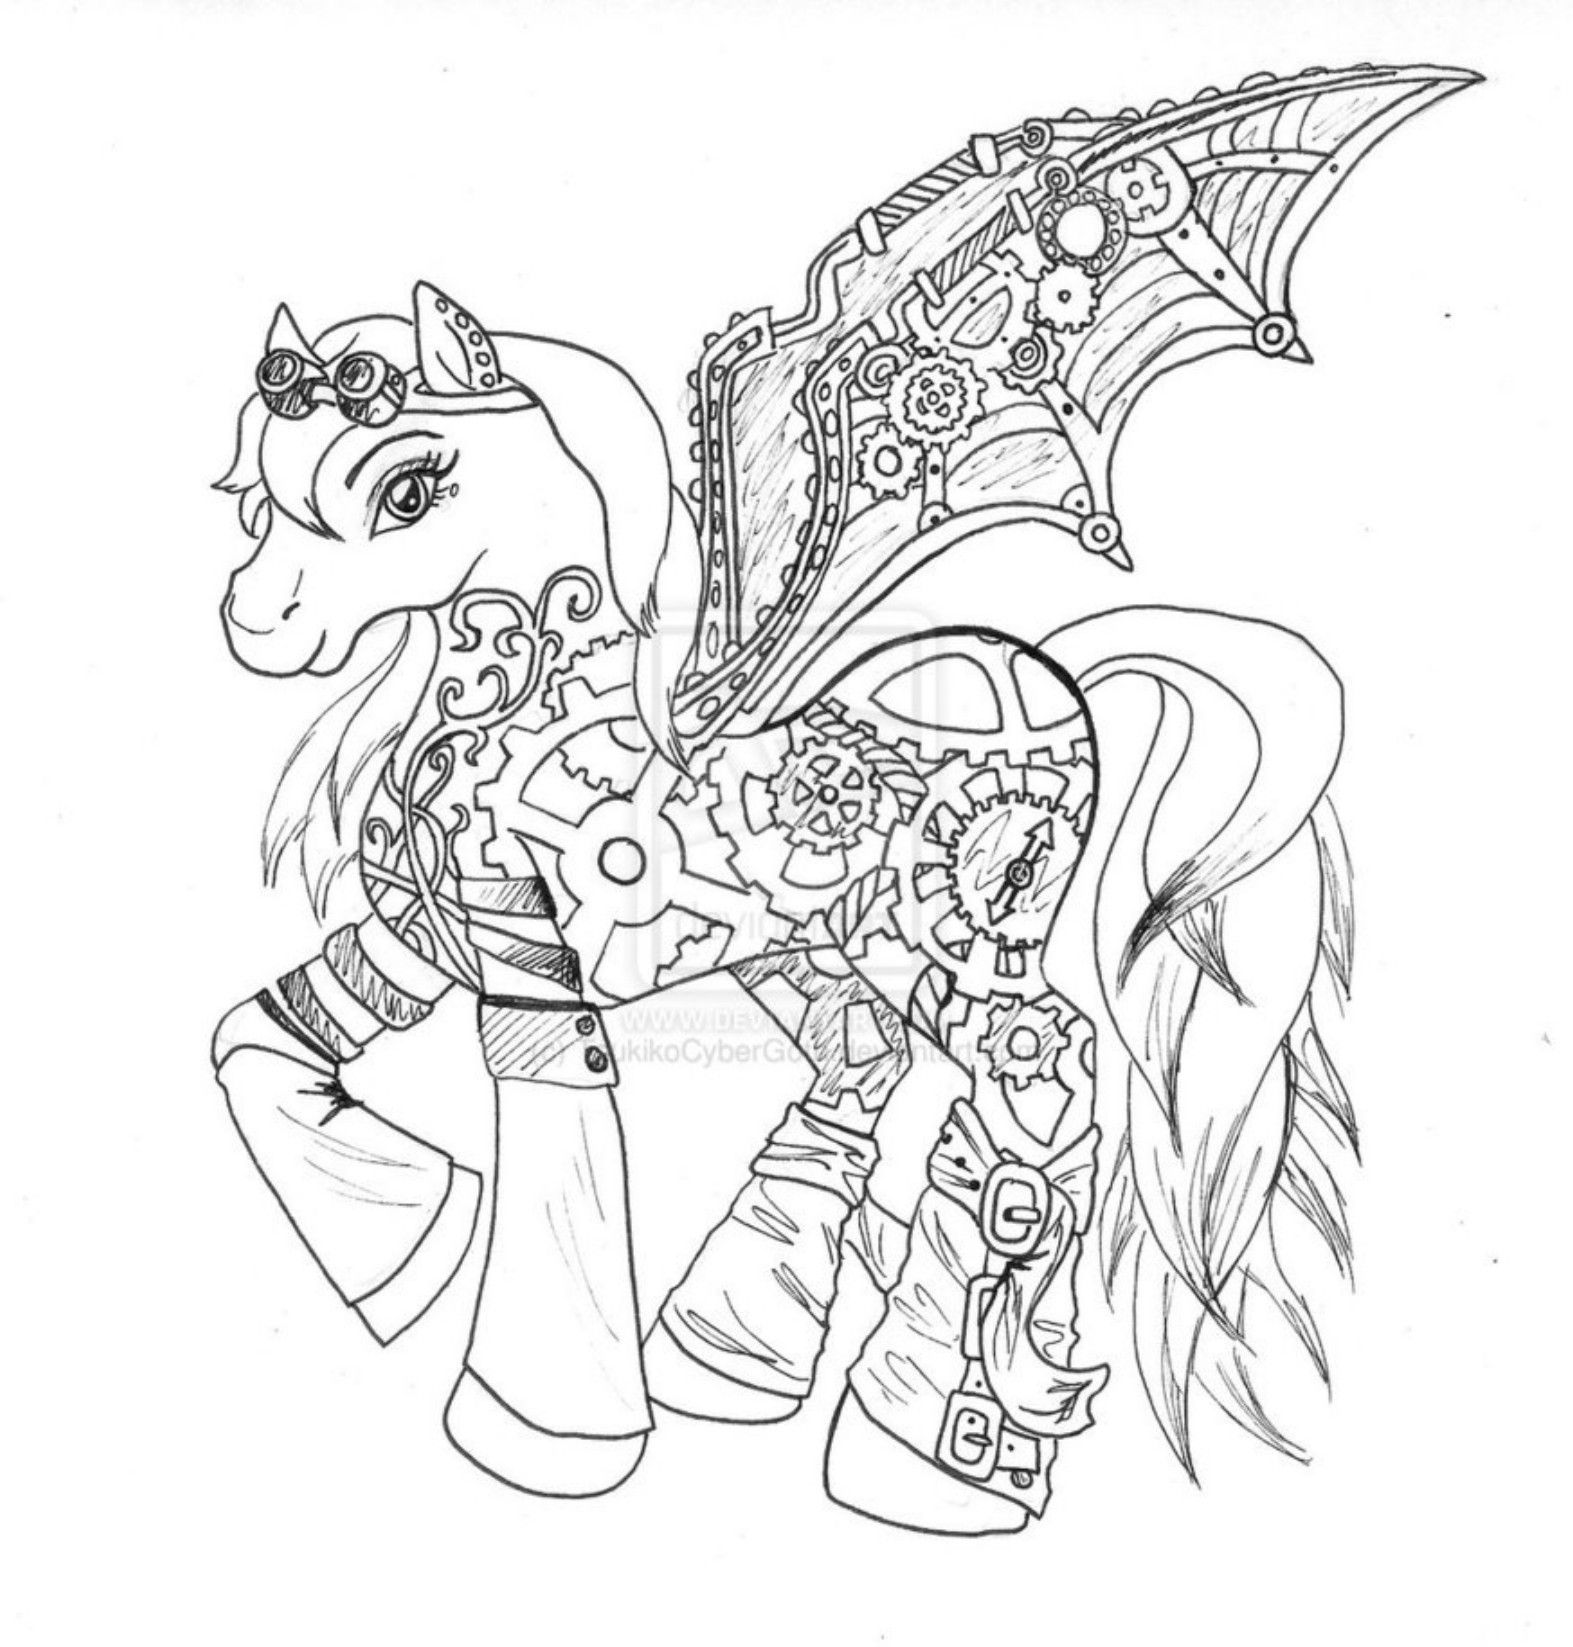 Steampunk My Little Pony coloring